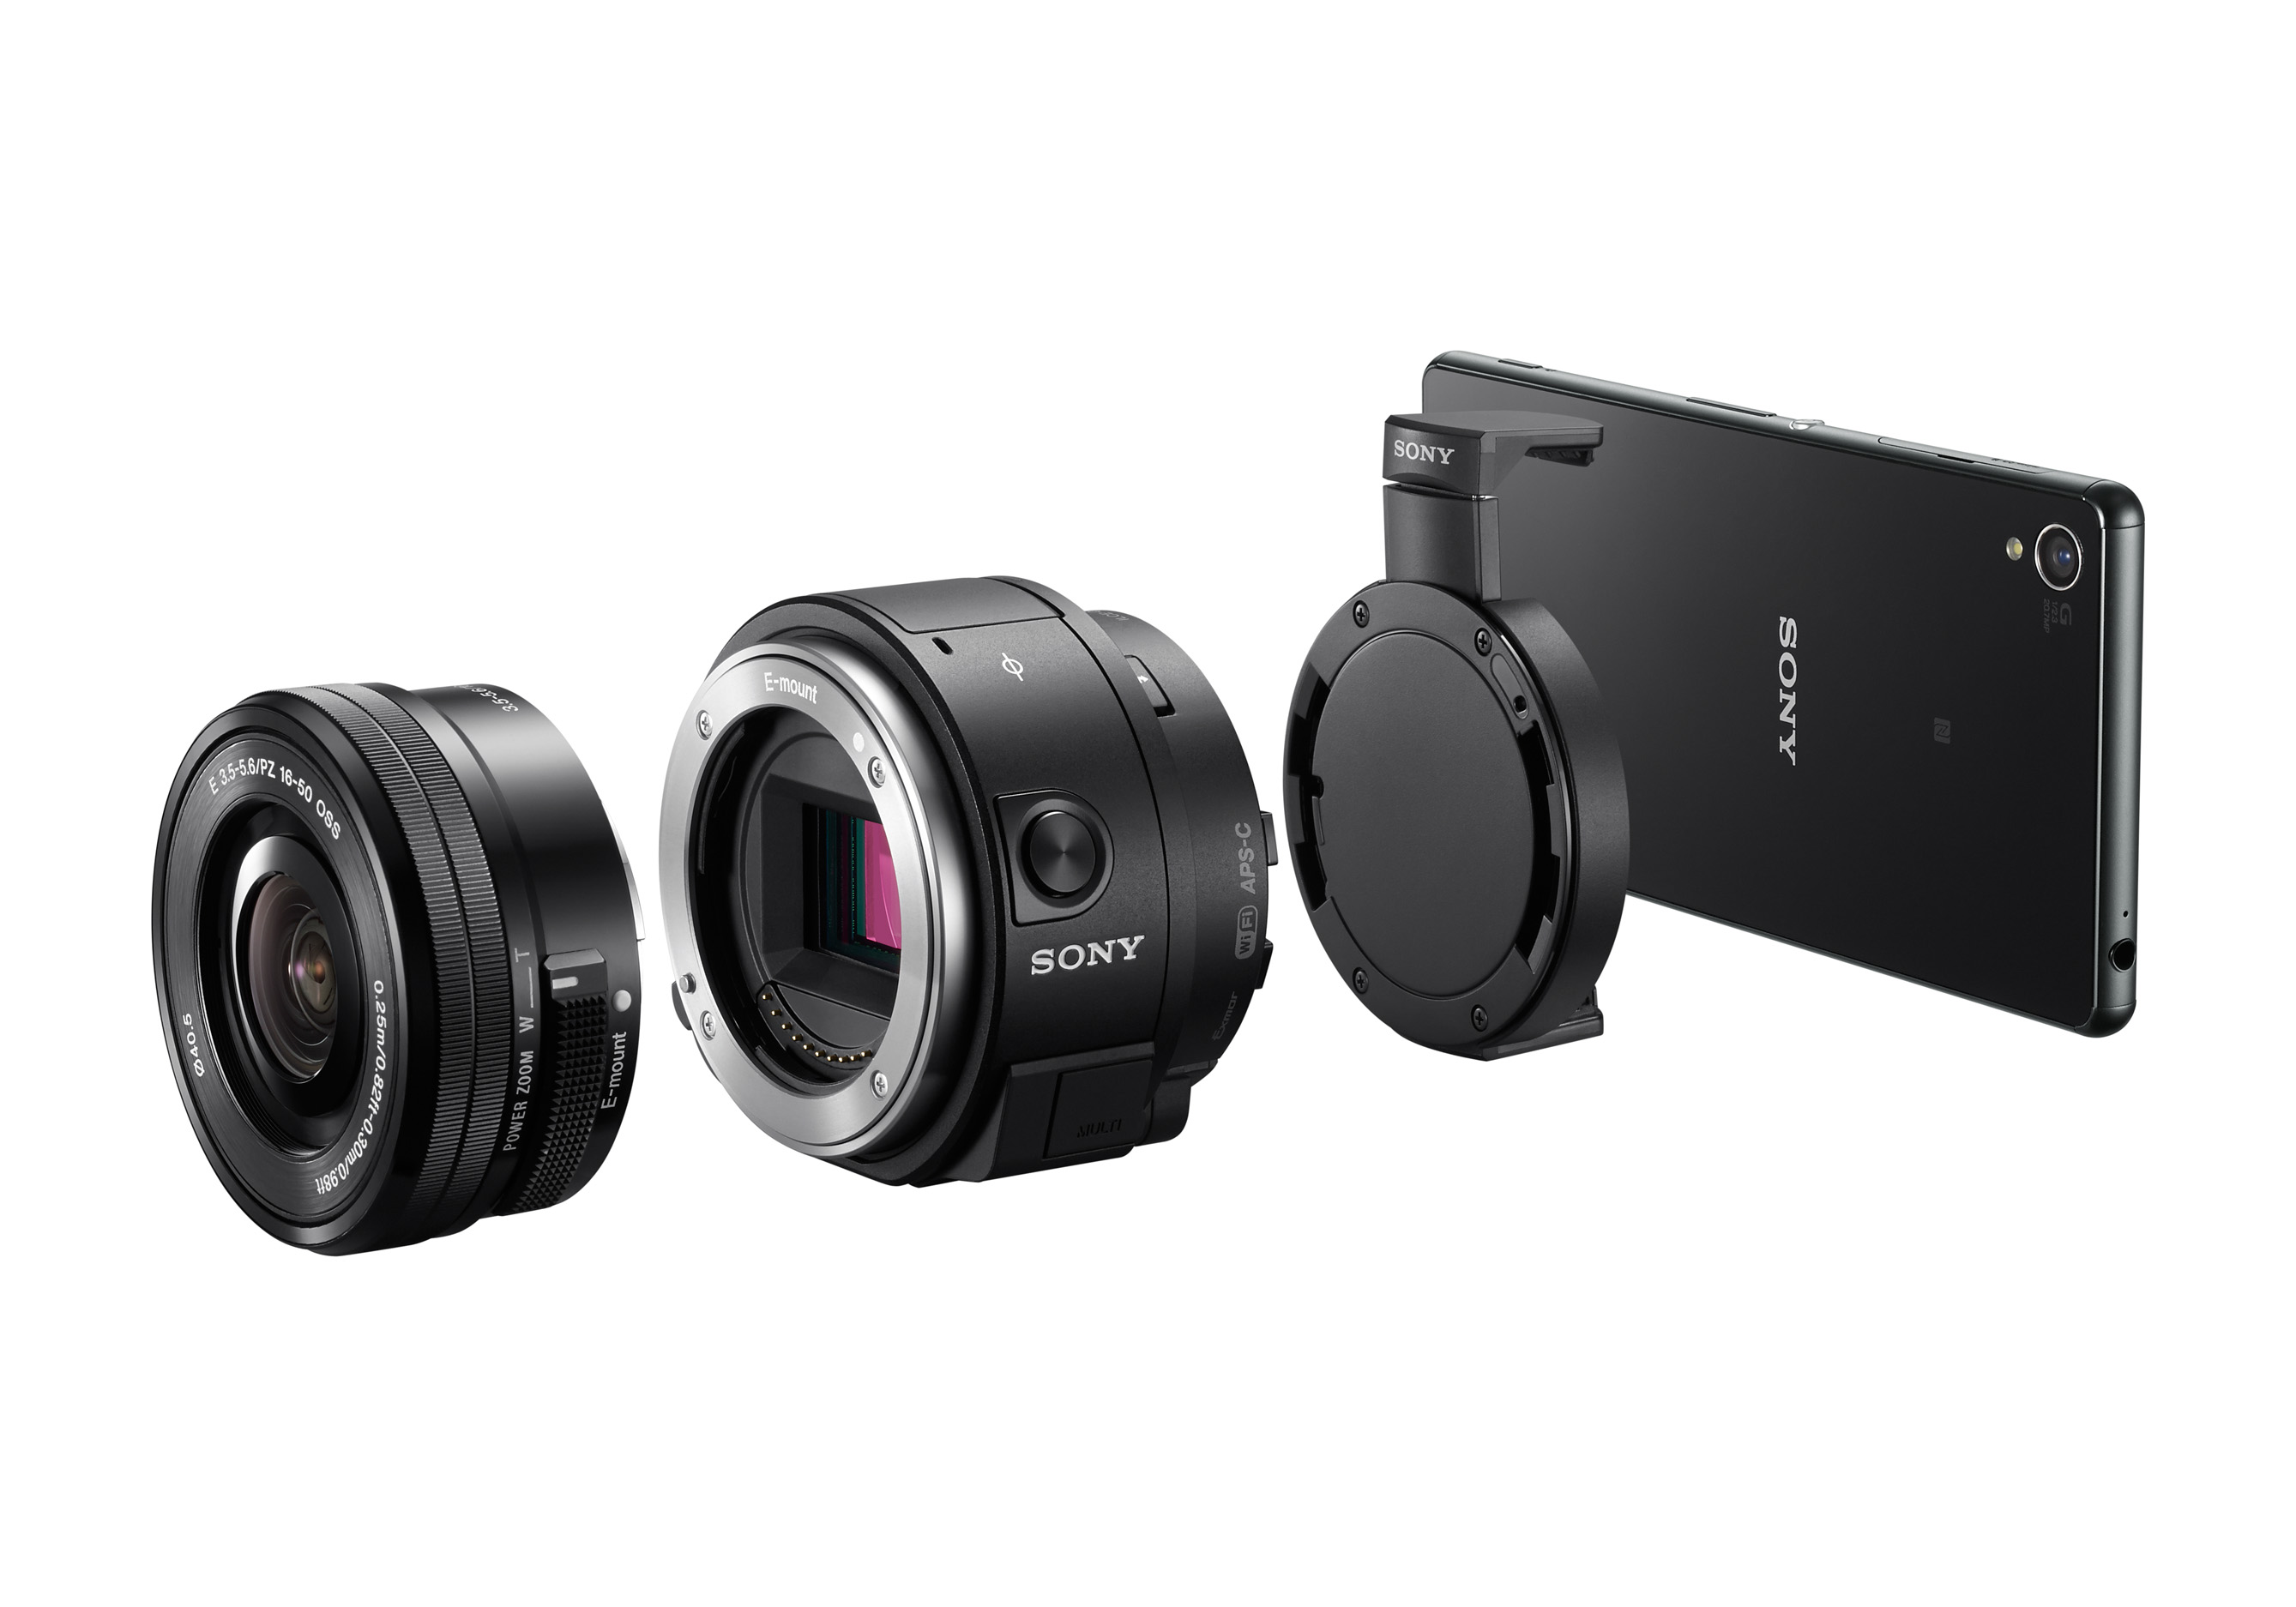 The APS-C based Sony QX1